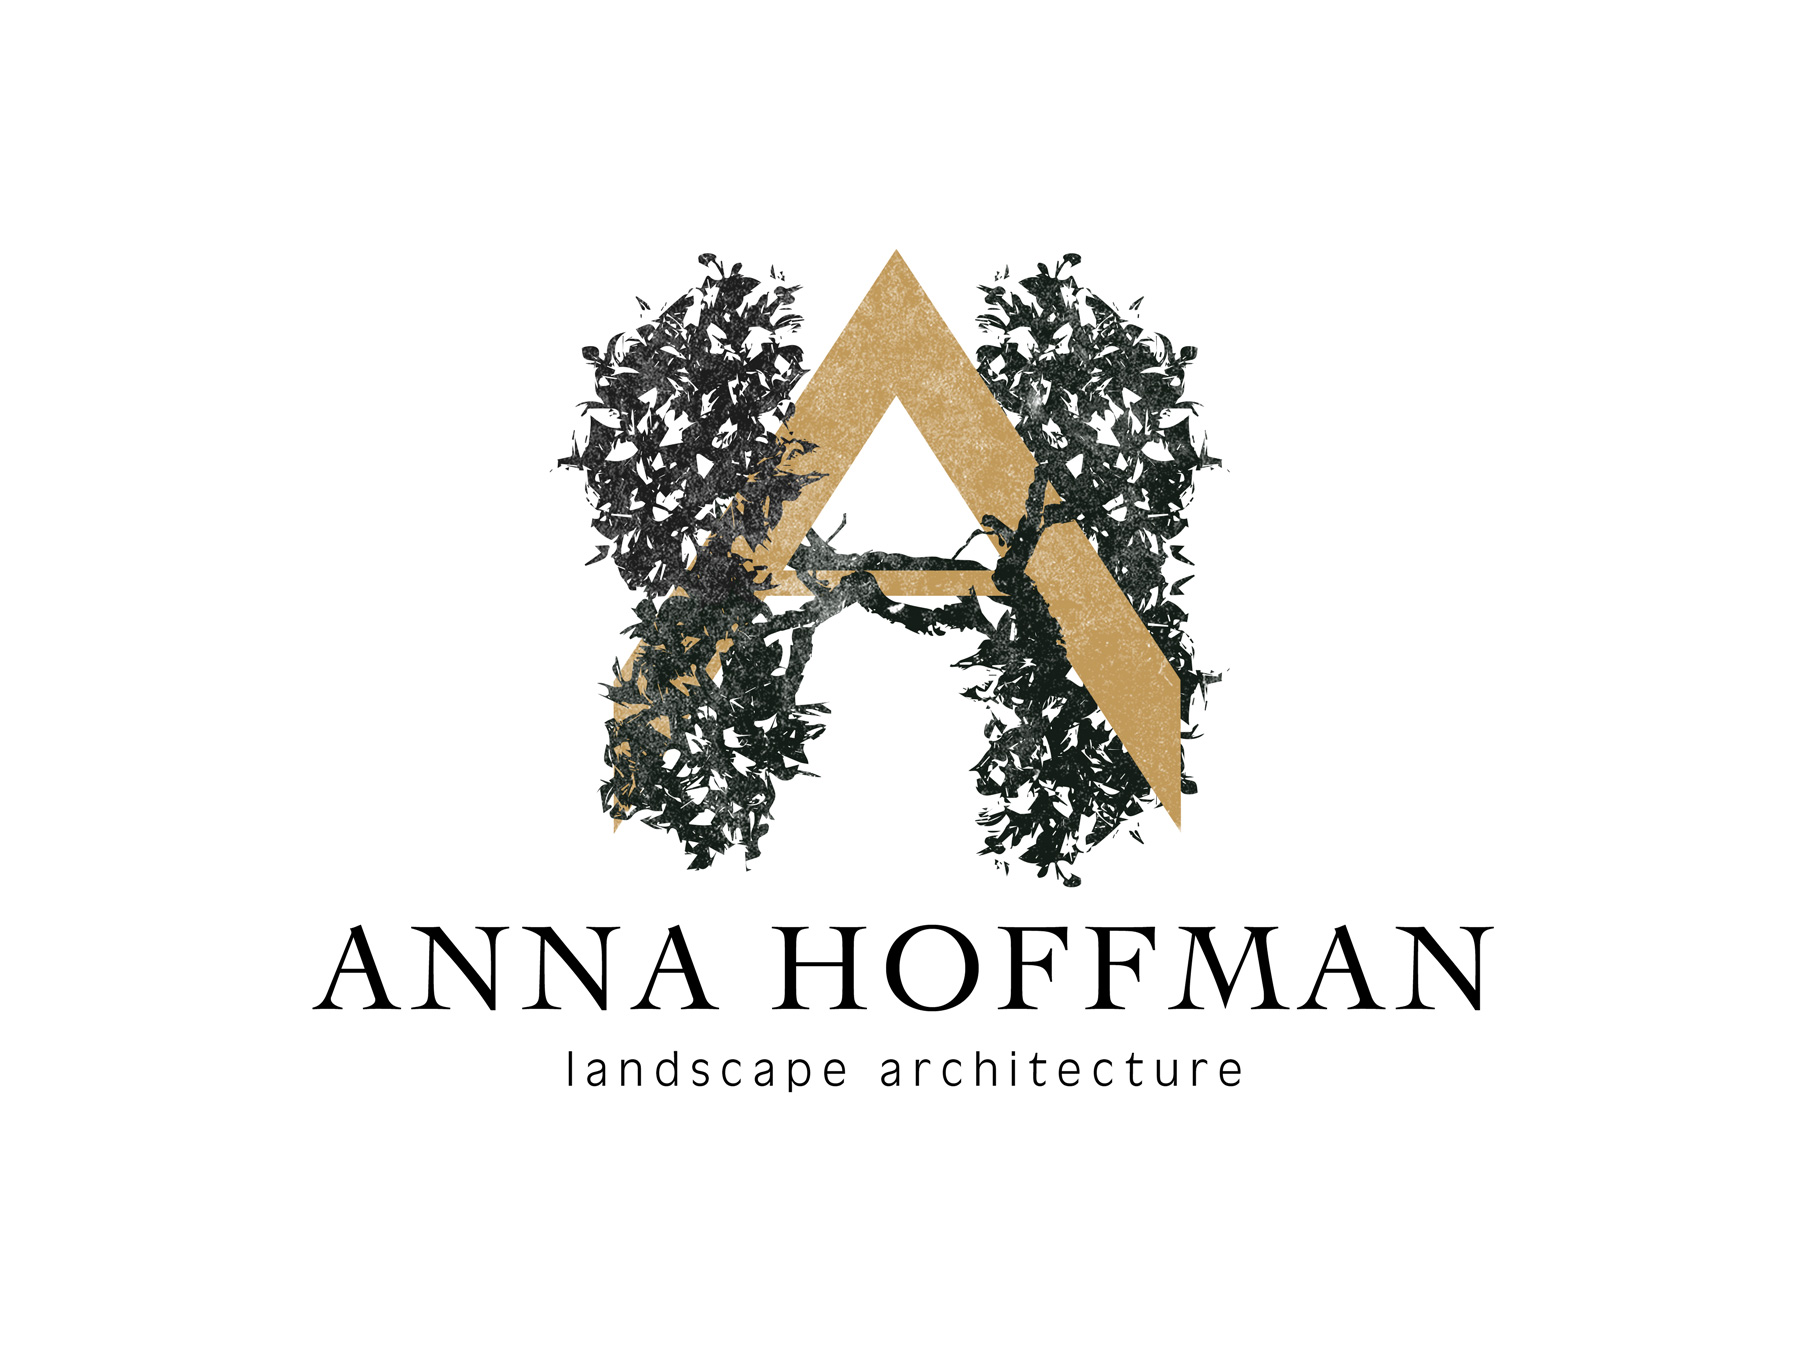 Anna-Hoffman-Logo-with-Text-Branding logo.jpg